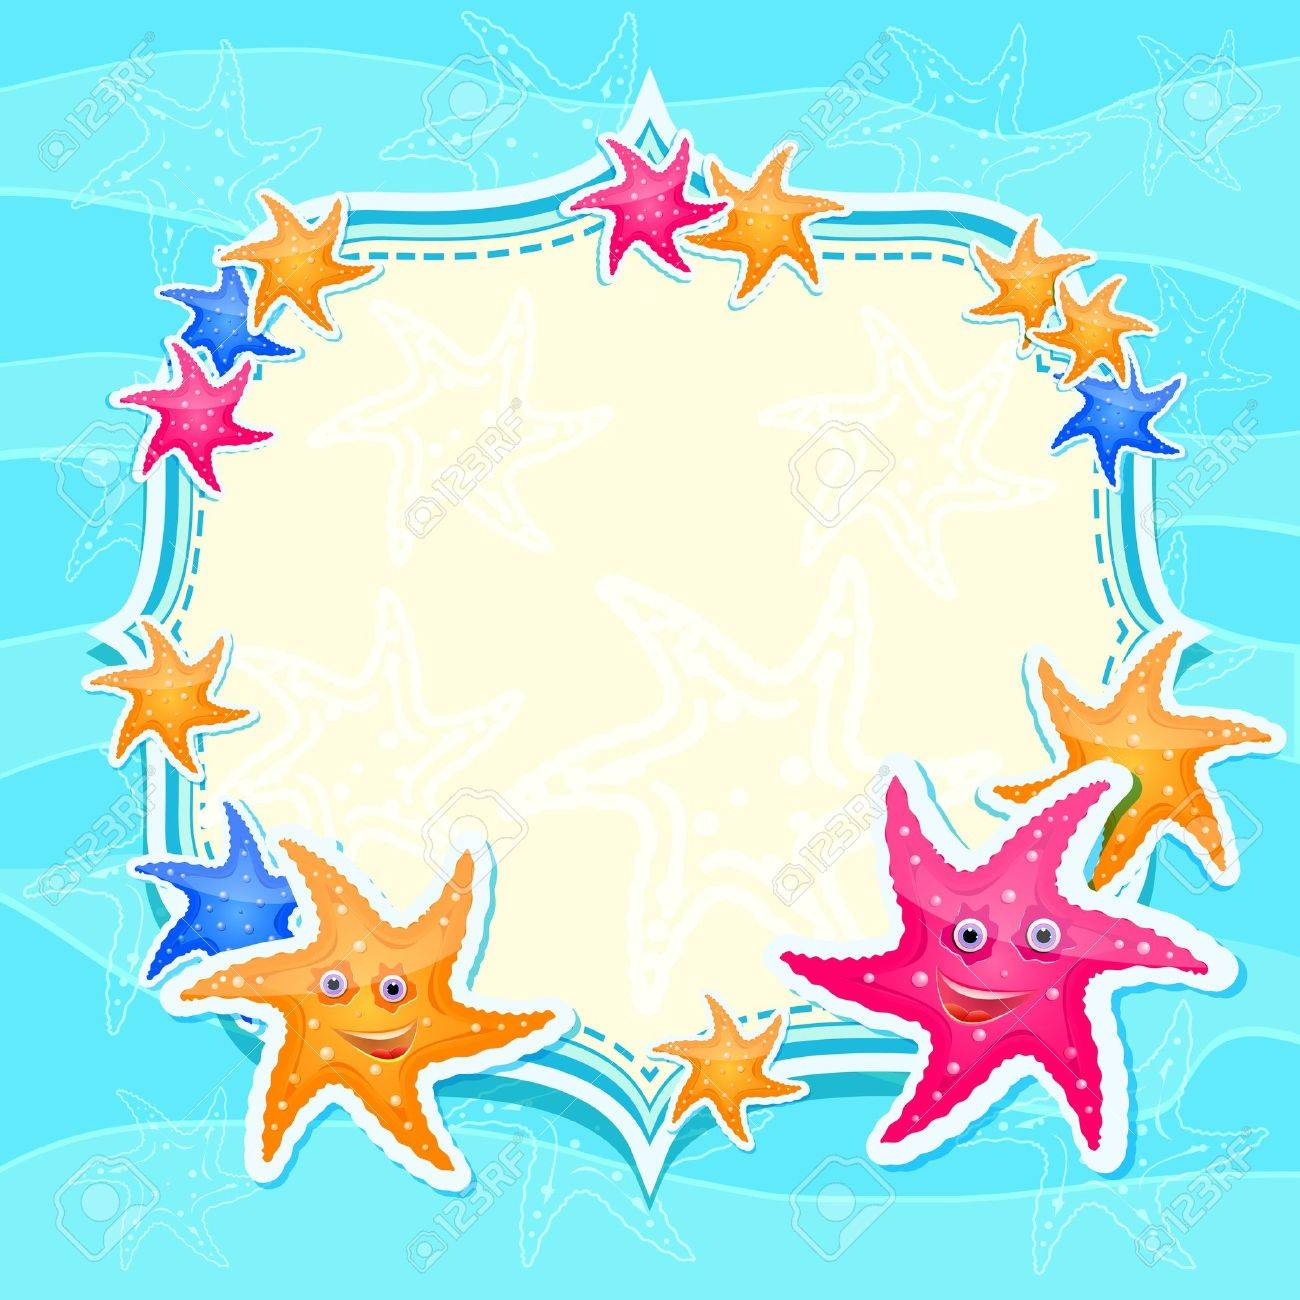 Blue Marine Invitation Card with Bright Starfishes. Cartoon Background Stock Vector - 19396167